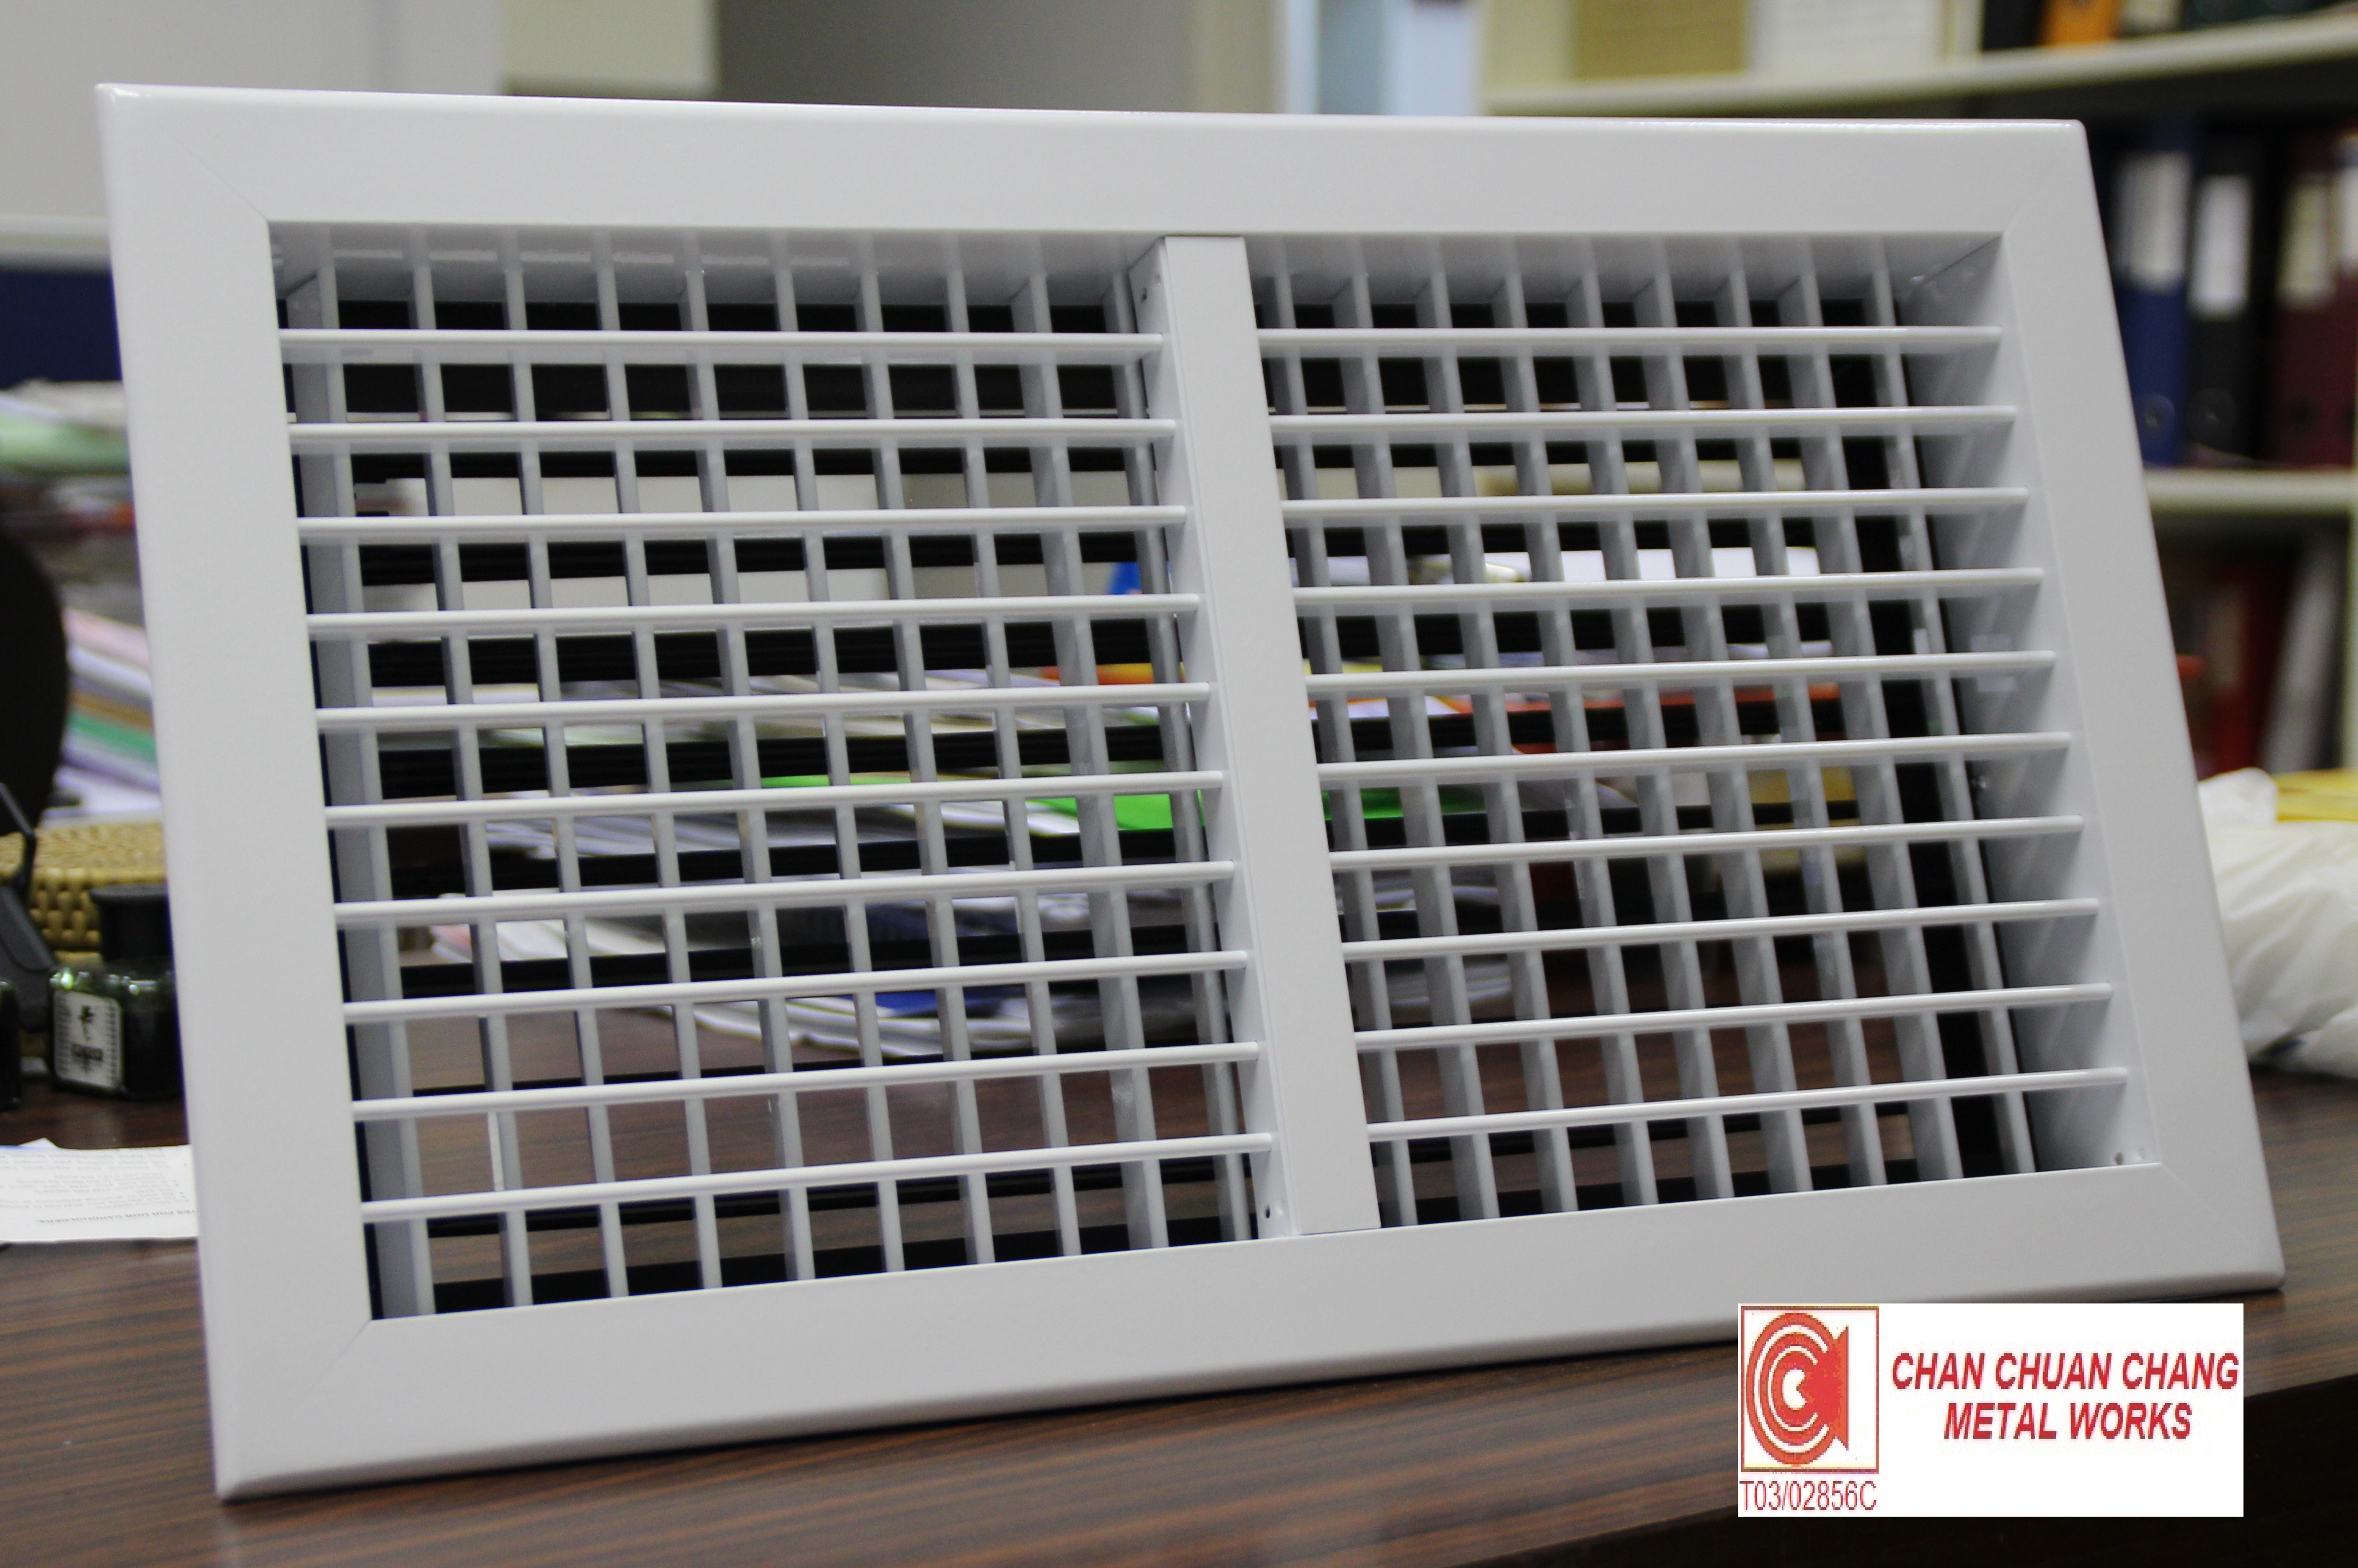 Double Deflection Grille With Damper : Chan chuan chang metal works